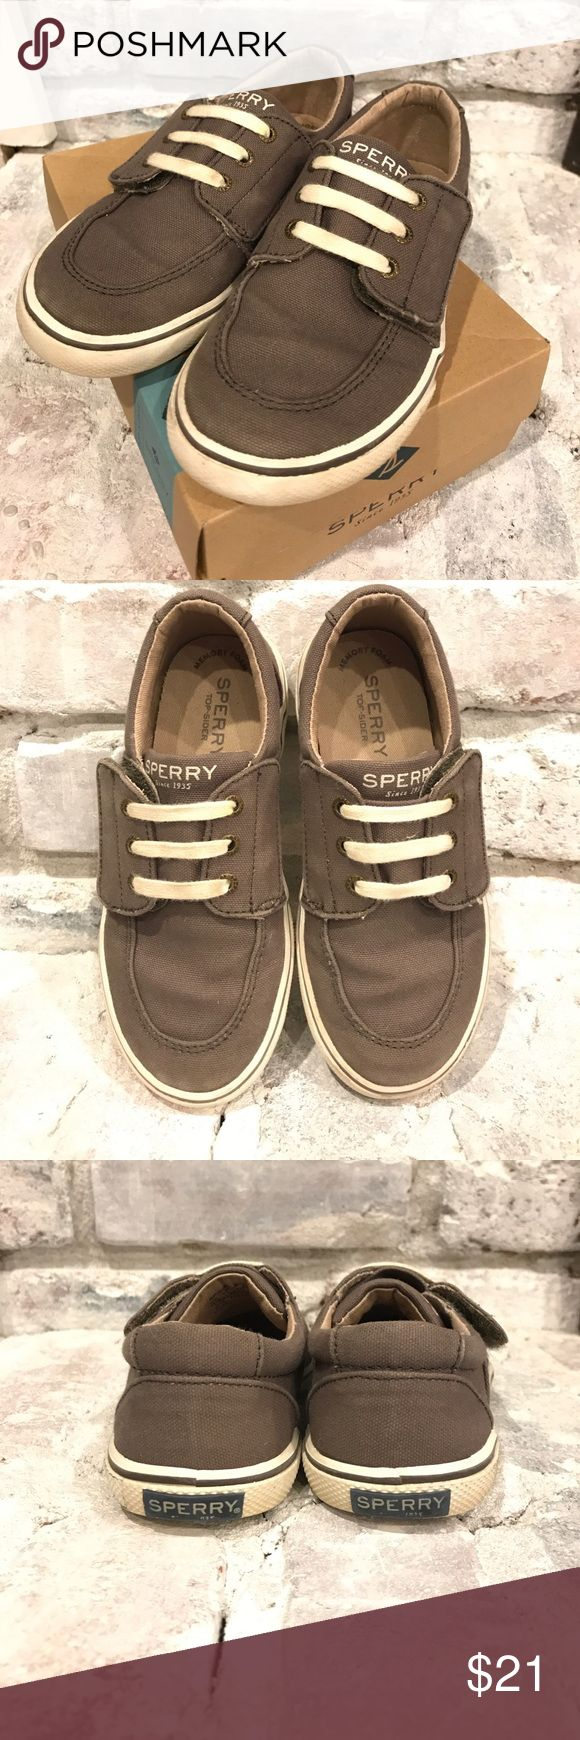 Sperry Boys Ollie Jr. Shoes 12M Boys Sperry shoes in excellent used condition (only worn a few times). Velcro strap makes it easy for kids to put on. Color is called Truffle - a mix between gray and brown. Original box included. Smoke free home. Sperry Shoes Sneakers